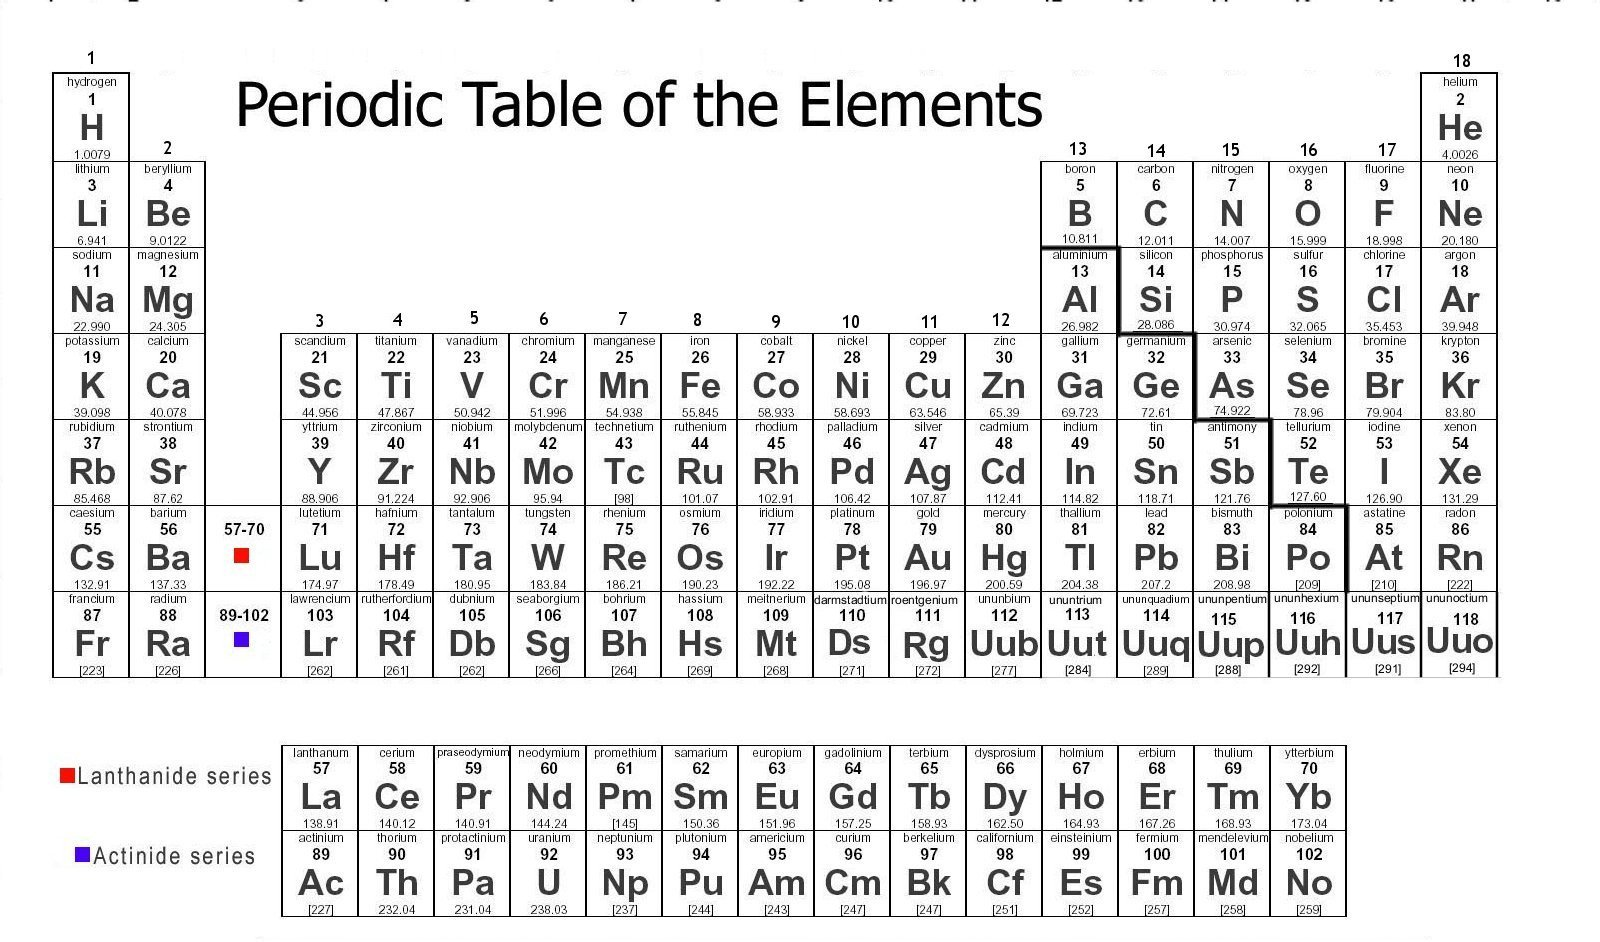 8th Grade Periodic Table Worksheet 32 Elements the Periodic Table Worksheet Worksheet